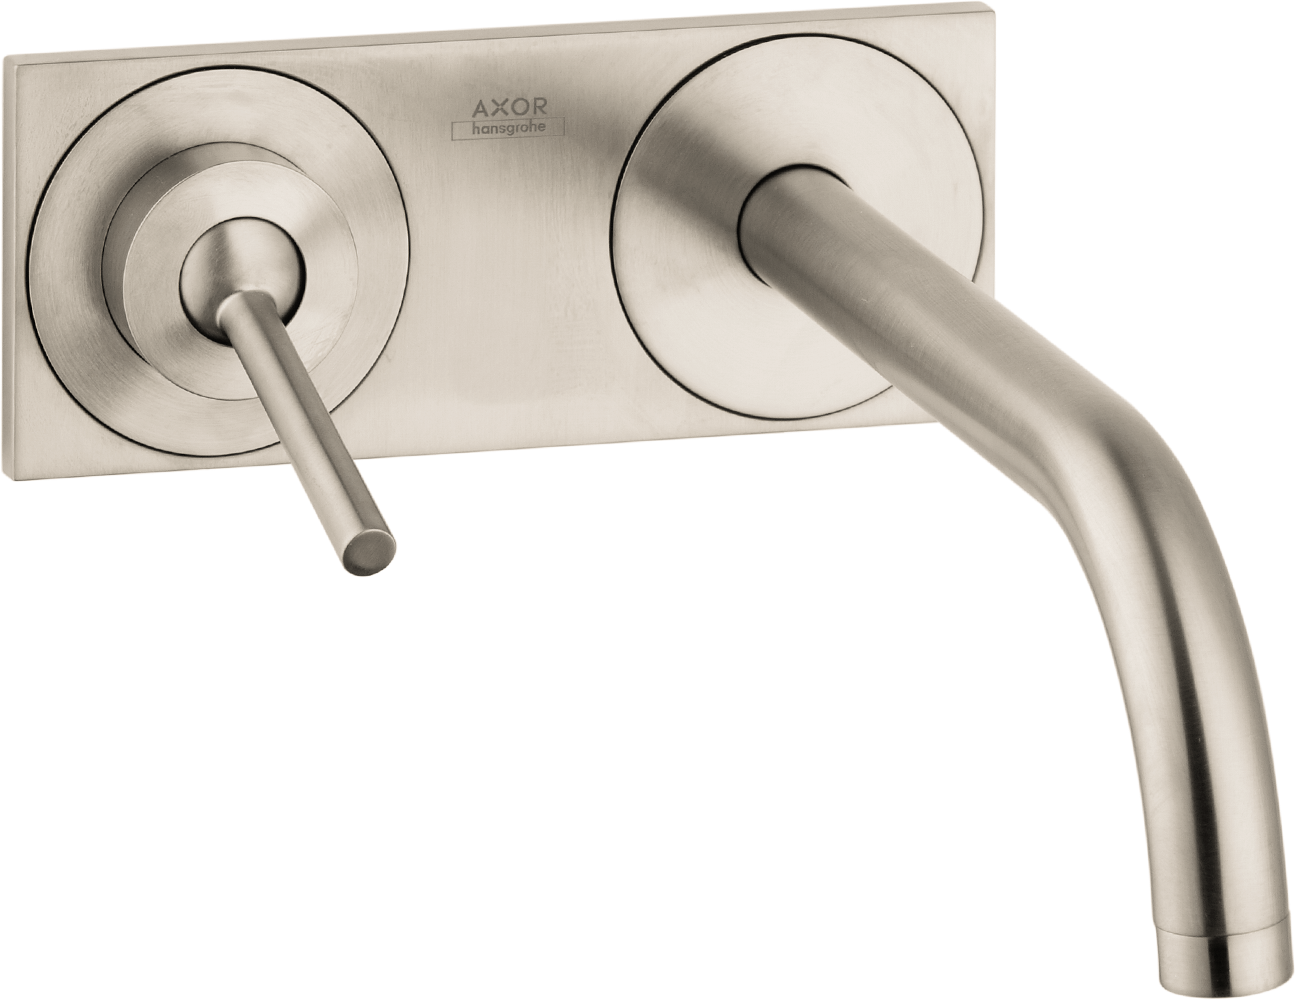 Axor AXOR Uno Wall-Mounted Single-Handle Faucet Trim with Base Plate, 1.2 GPM